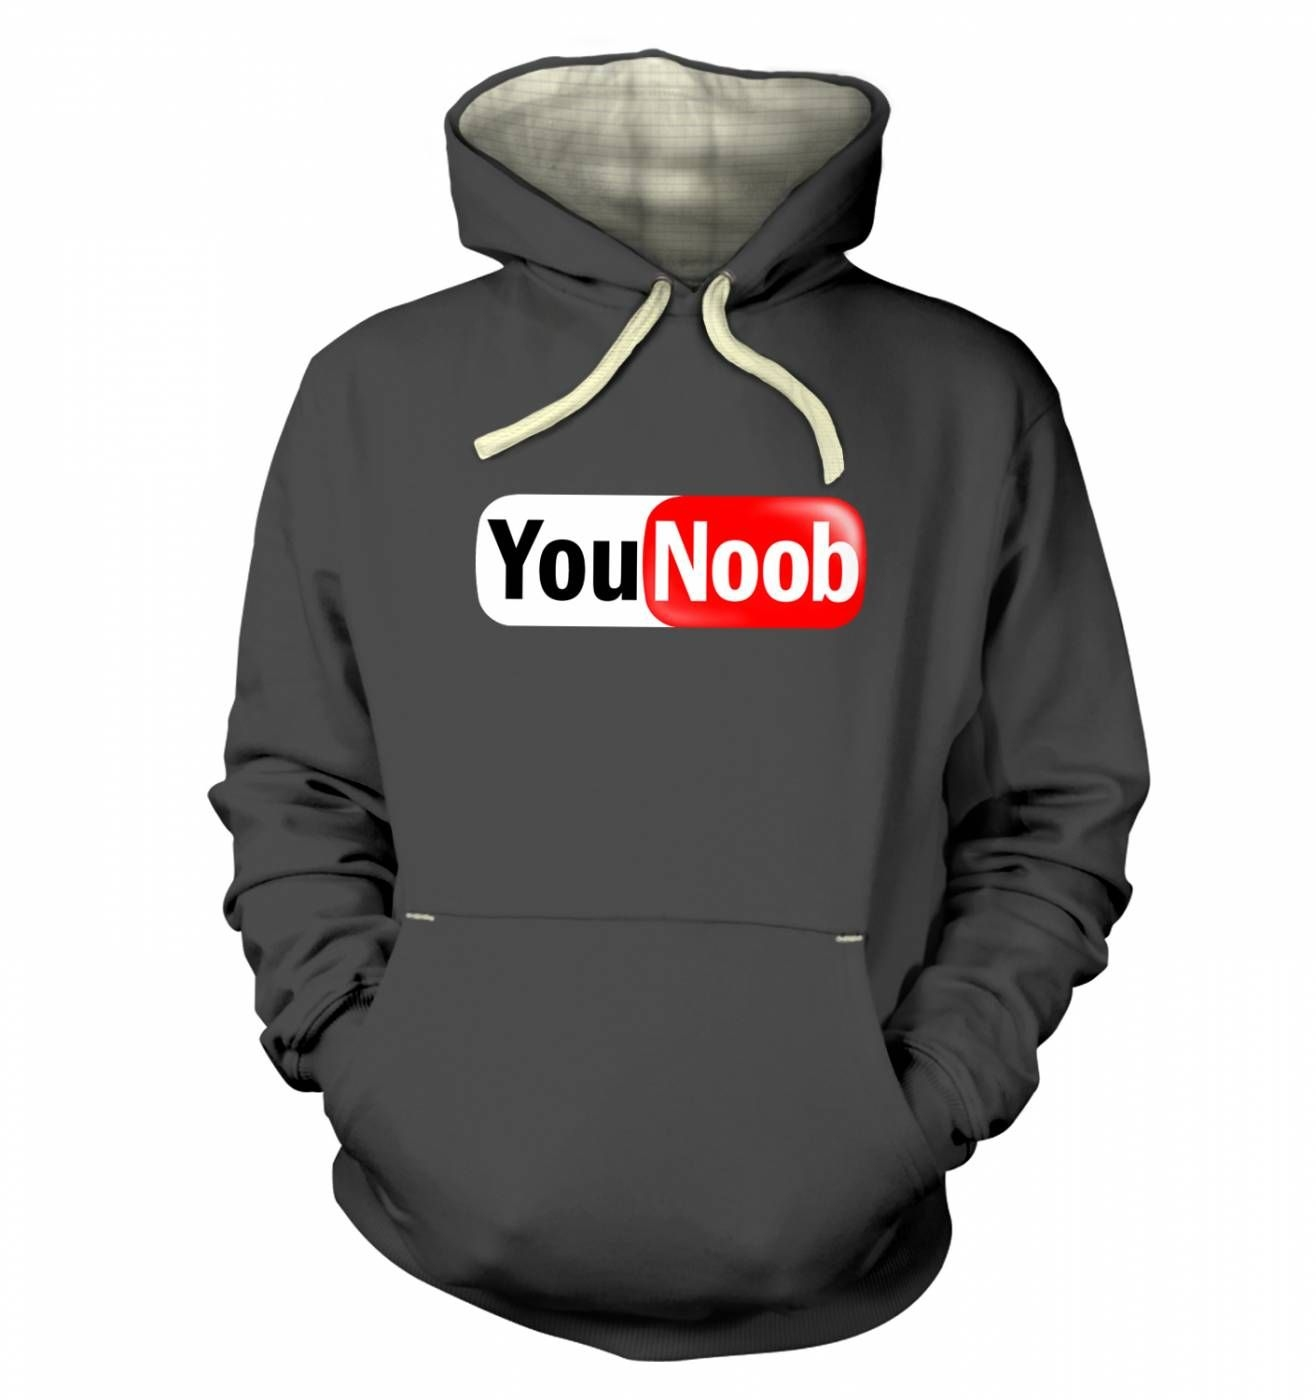 YouNoob (white background) hoodie